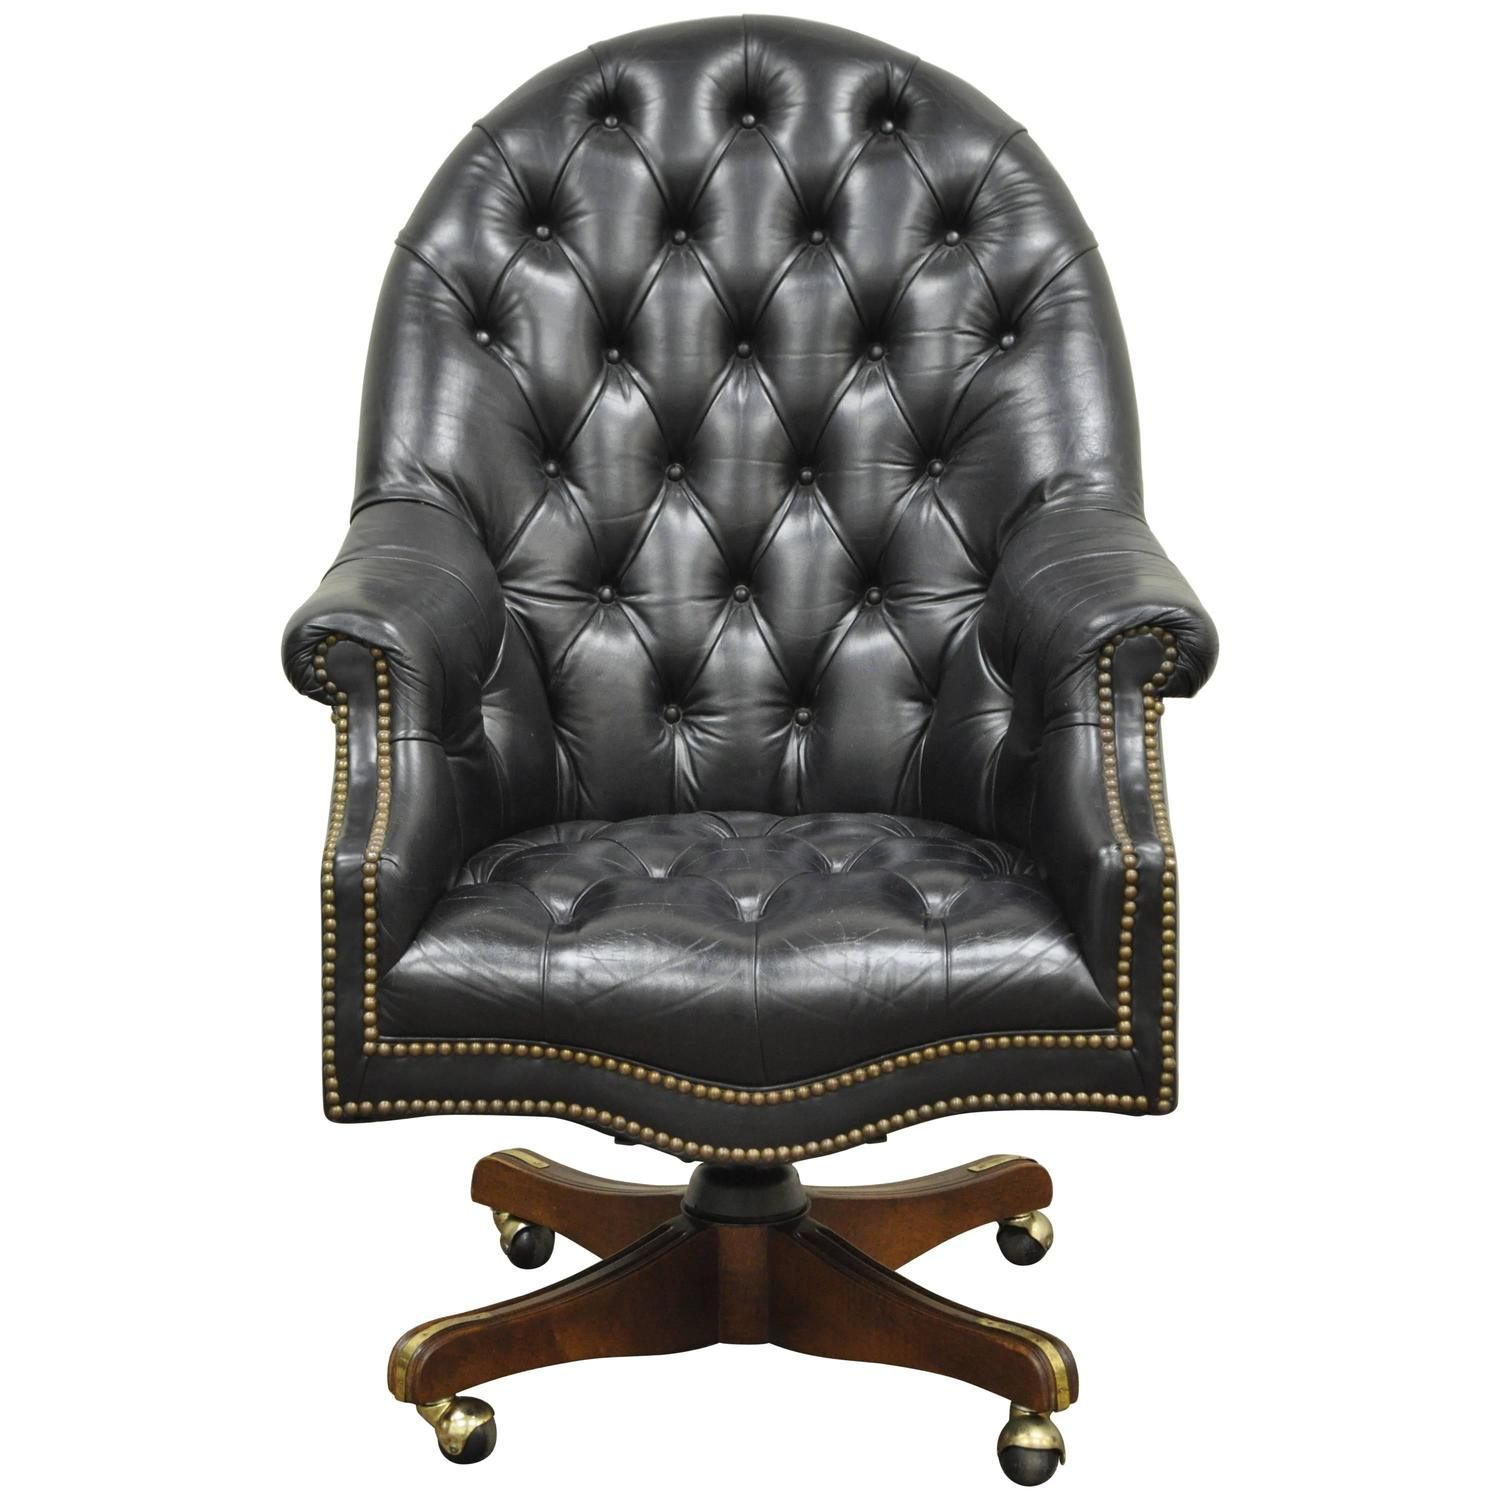 Deep Tufted Black Leather English Chesterfield Style Rolling Office Desk Chair Vintage Office Chair Black Office Chair Office Guest Chairs